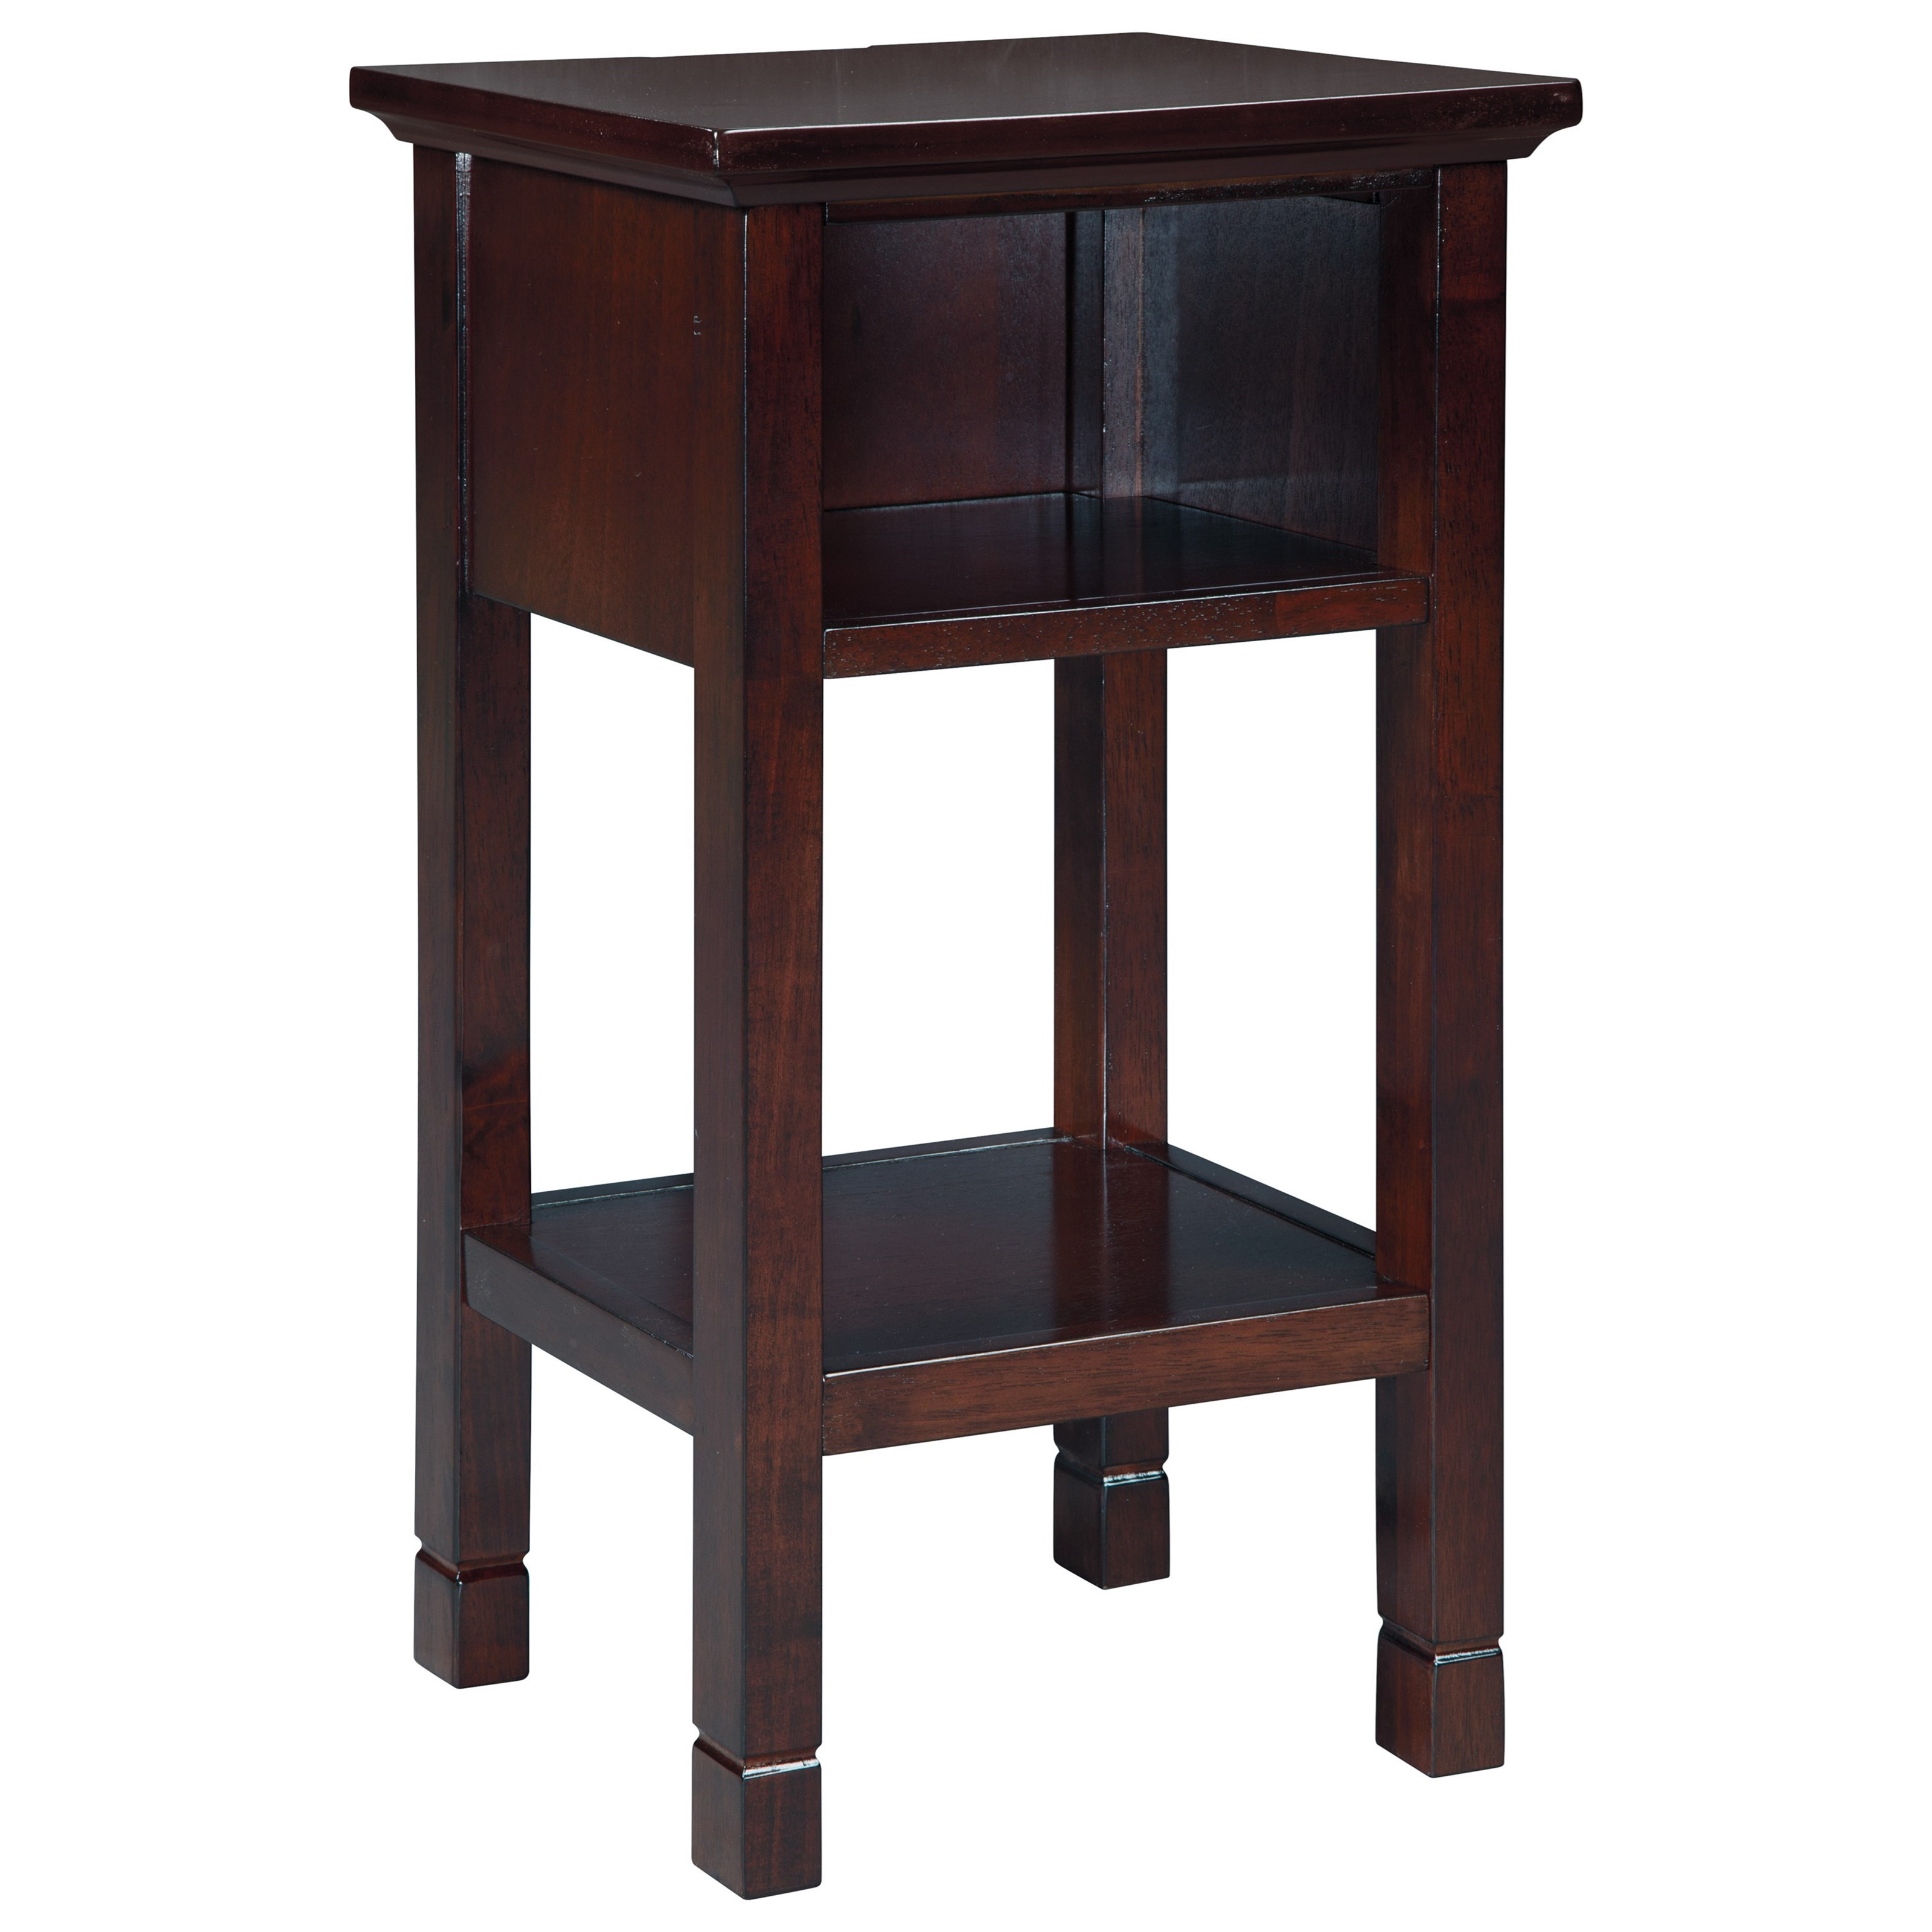 Marnville Accent Table by Signature Design by Ashley at Value City Furniture